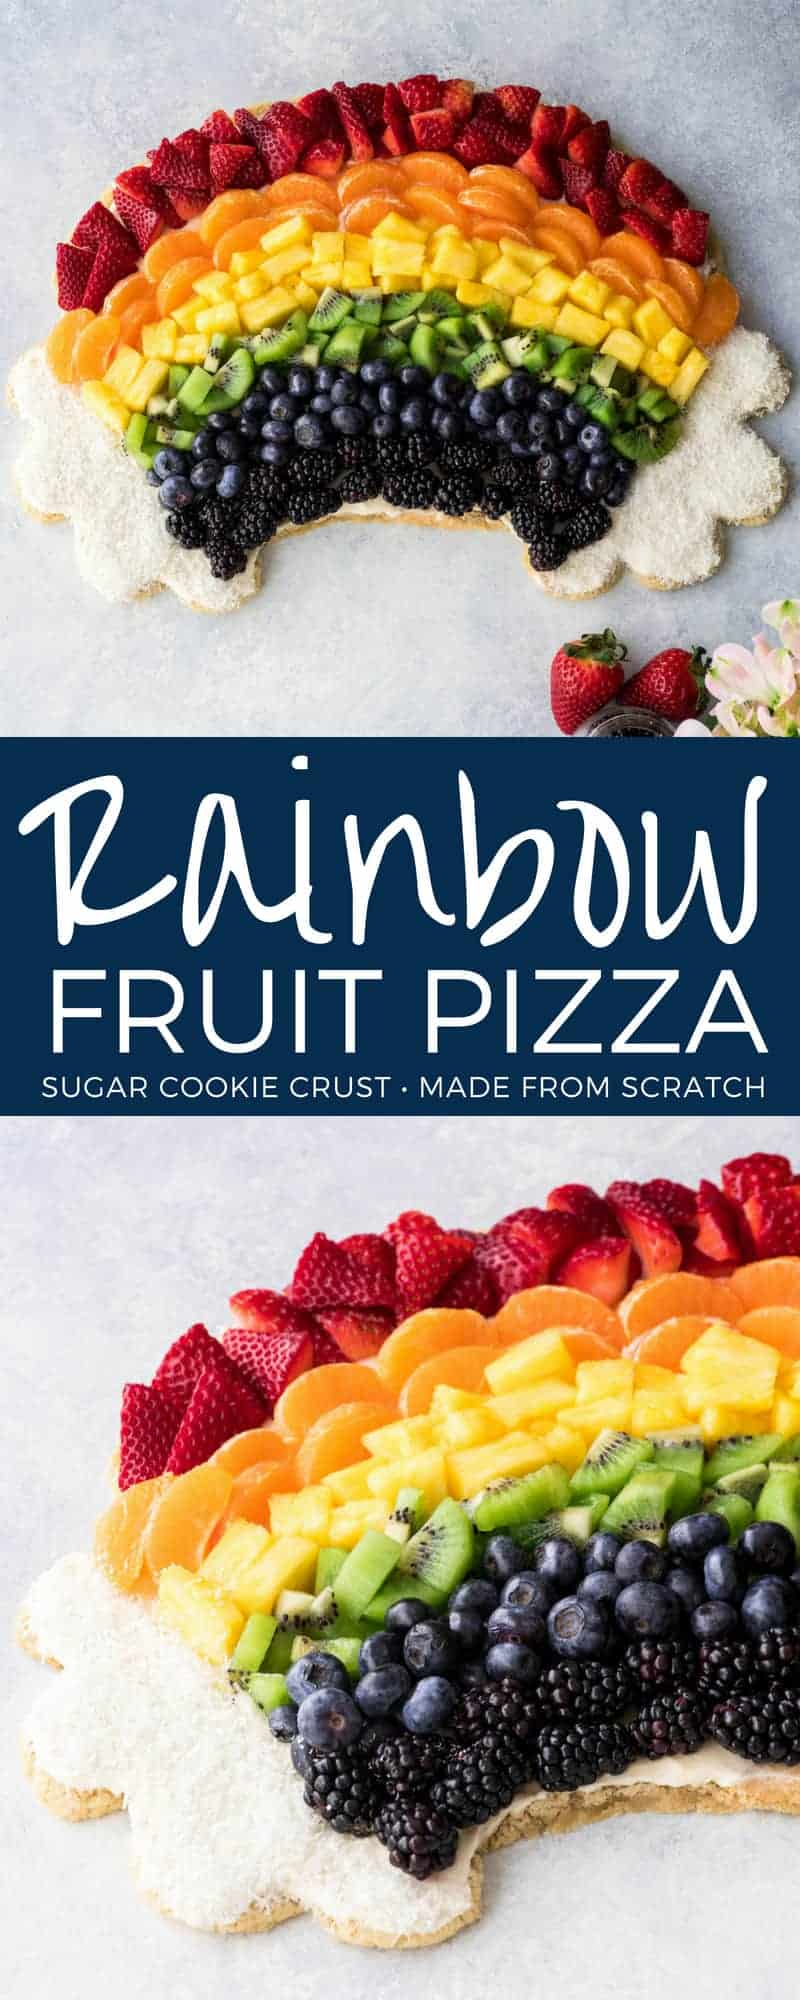 This Rainbow Fruit Pizza Recipe is a beautiful dessert that everyone will LOVE! The most delicious cream cheese frosting is spread over a chew sugar cookie crust and piled high with fruits in every color of the rainbow! The perfect dessert to feed a crowd! #rainbow #fruitpizza #fruit #dessert #creamcheesefrosting #sugarcookie